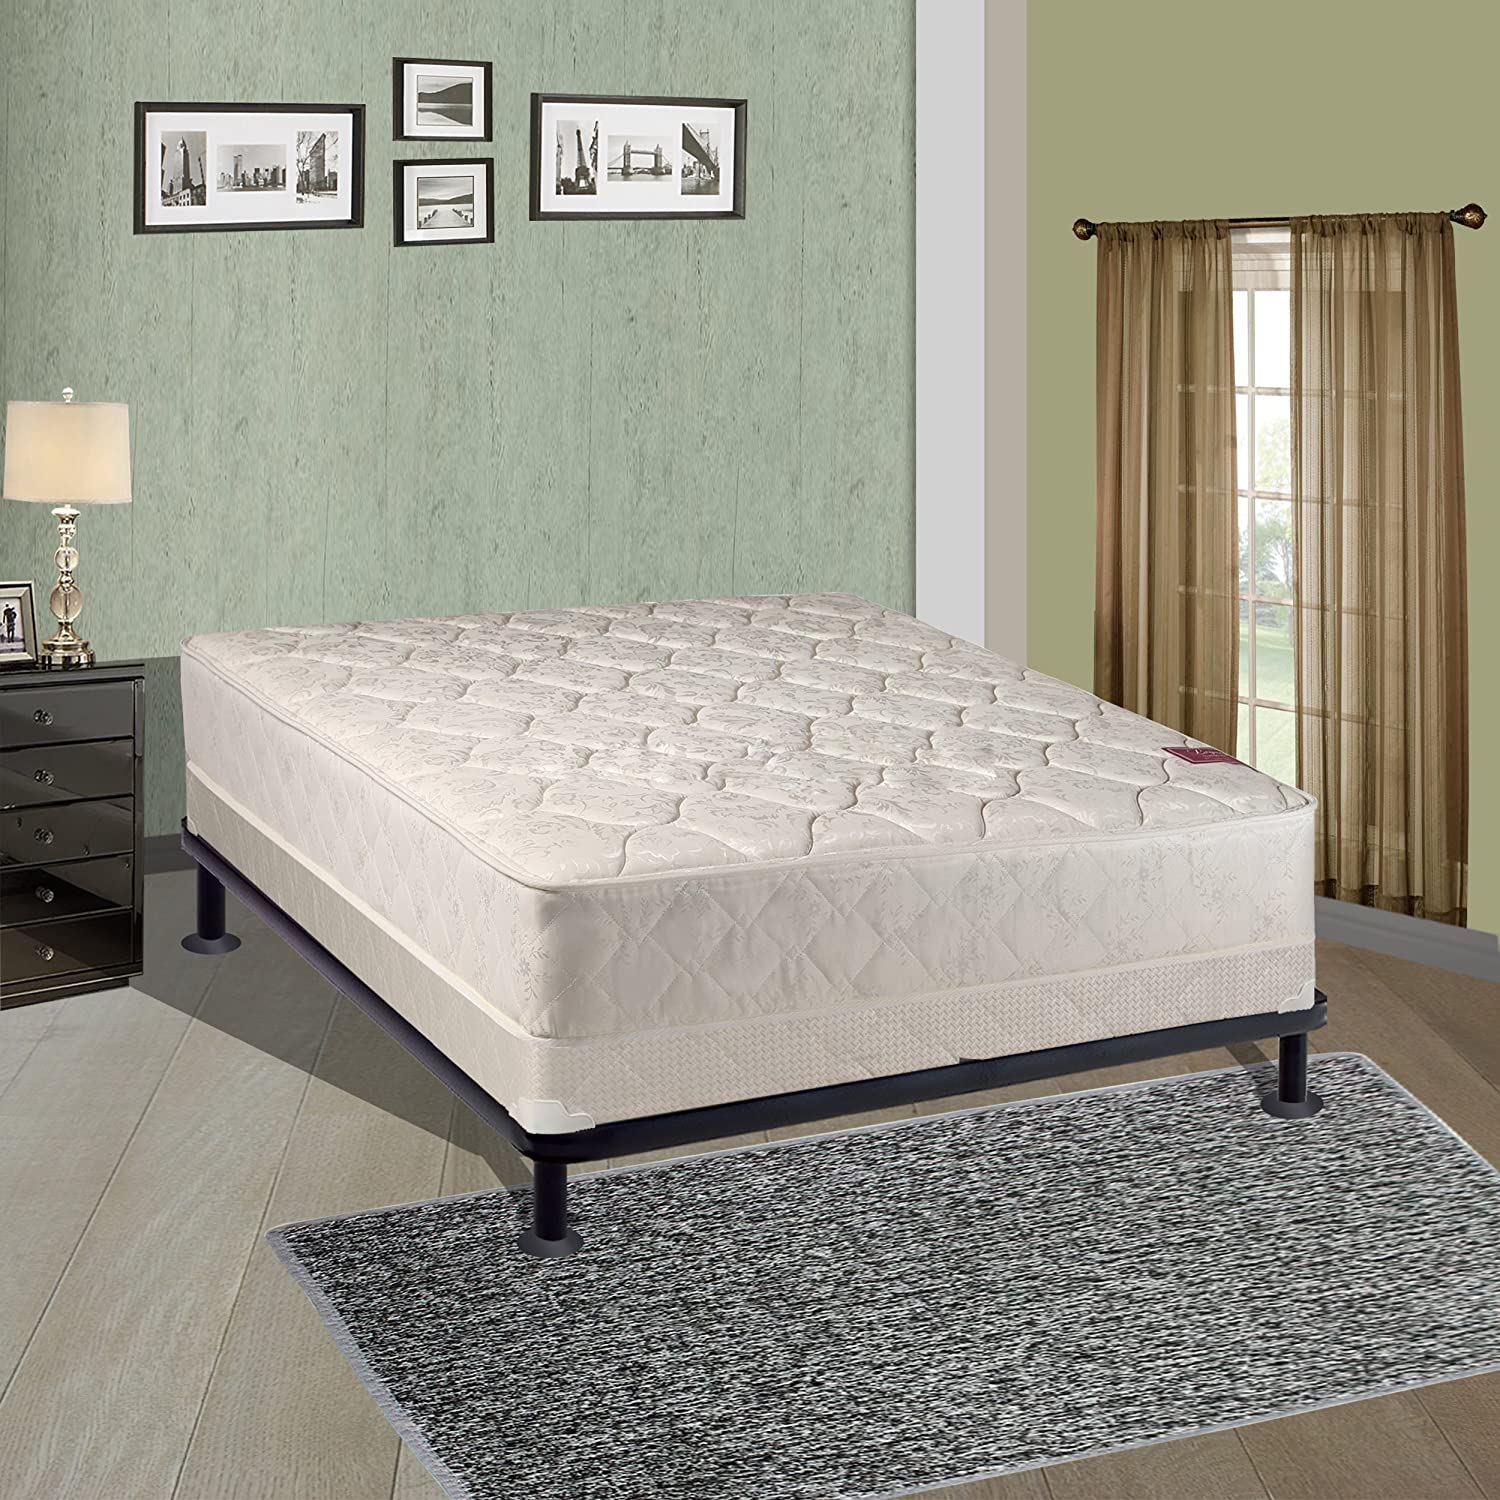 Continental Sleep Elegant Collection Twin Size Mattress Set with Firm Mattress and Low Profile Box Spring 99-3/3-2LP